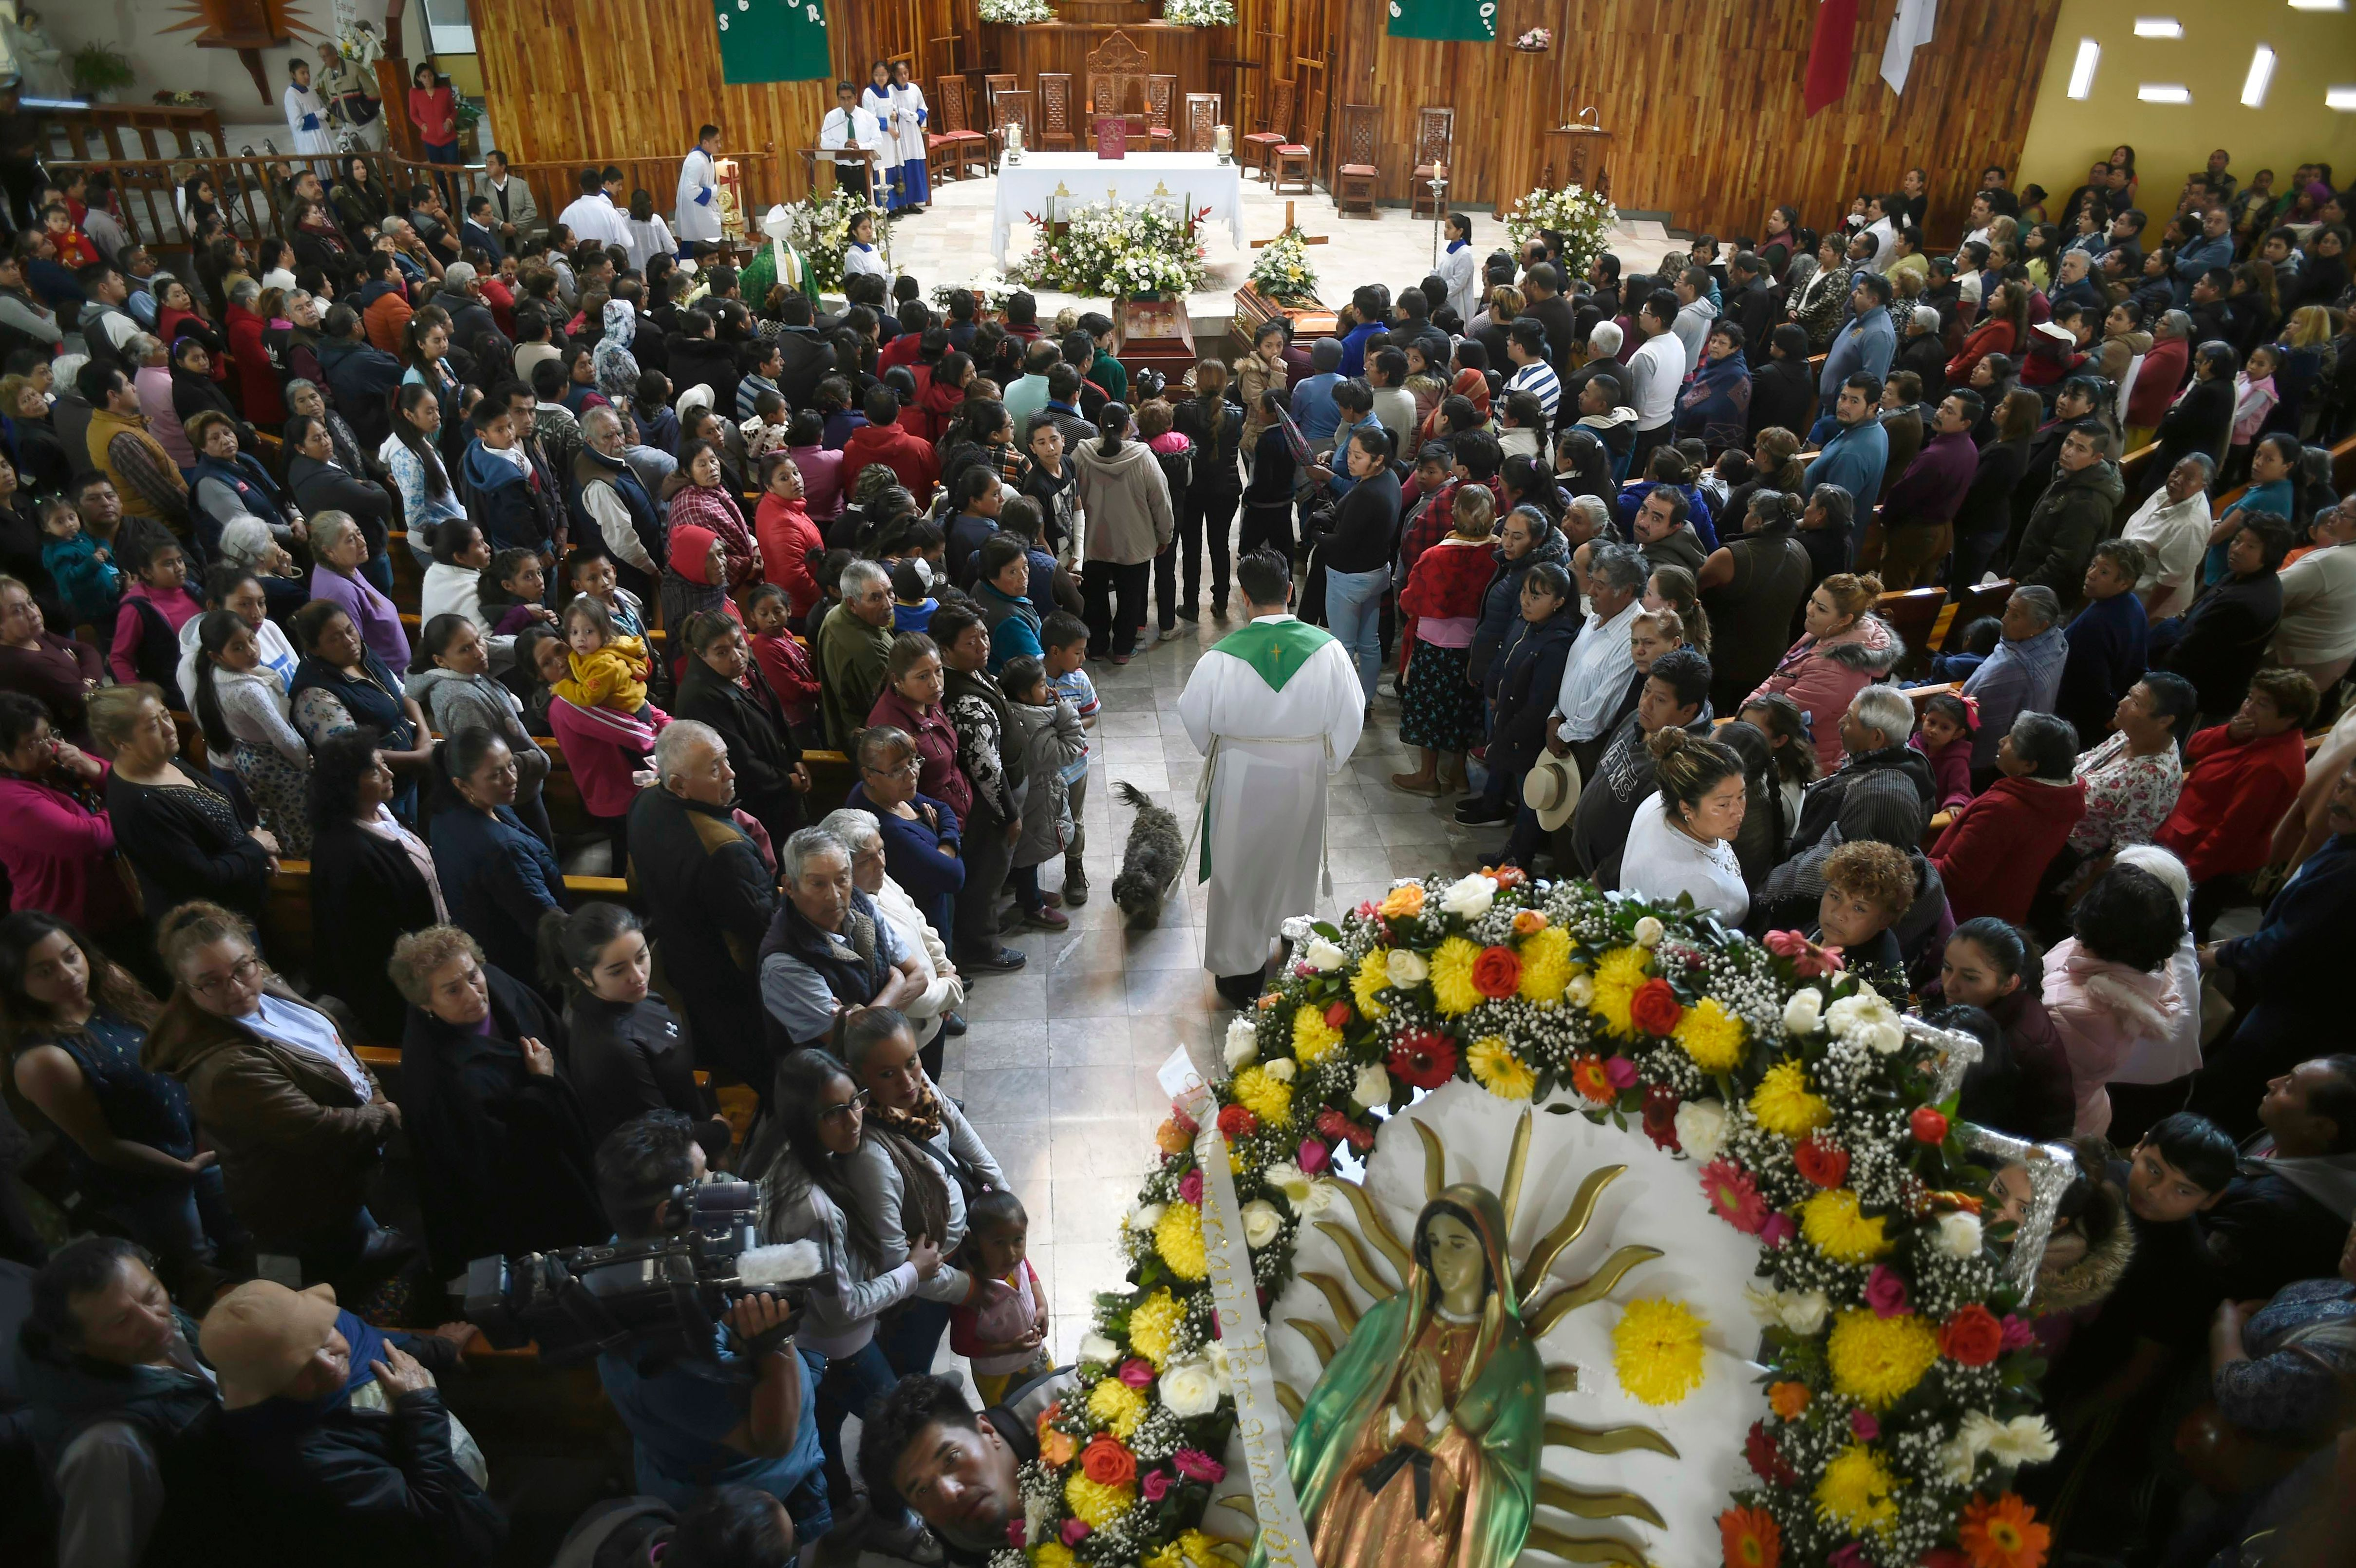 TOPSHOT - Relatives of three of the 73 people killed in a massive blaze triggered by a leaky pipeline in Tlahuelilpan, attend their funeral in Teltipan de Juarez community, in Hidalgo state, Mexico on January 20, 2019. - An explosion and fire in central Mexico killed at least 73 people after hundreds swarmed to the site of an illegal fuel-line tap to gather gasoline amid a government crackdown on fuel theft, officials said. (Photo by ALFREDO ESTRELLA / AFP) (Photo credit should read ALFREDO ESTRELLA/AFP/Getty Images)